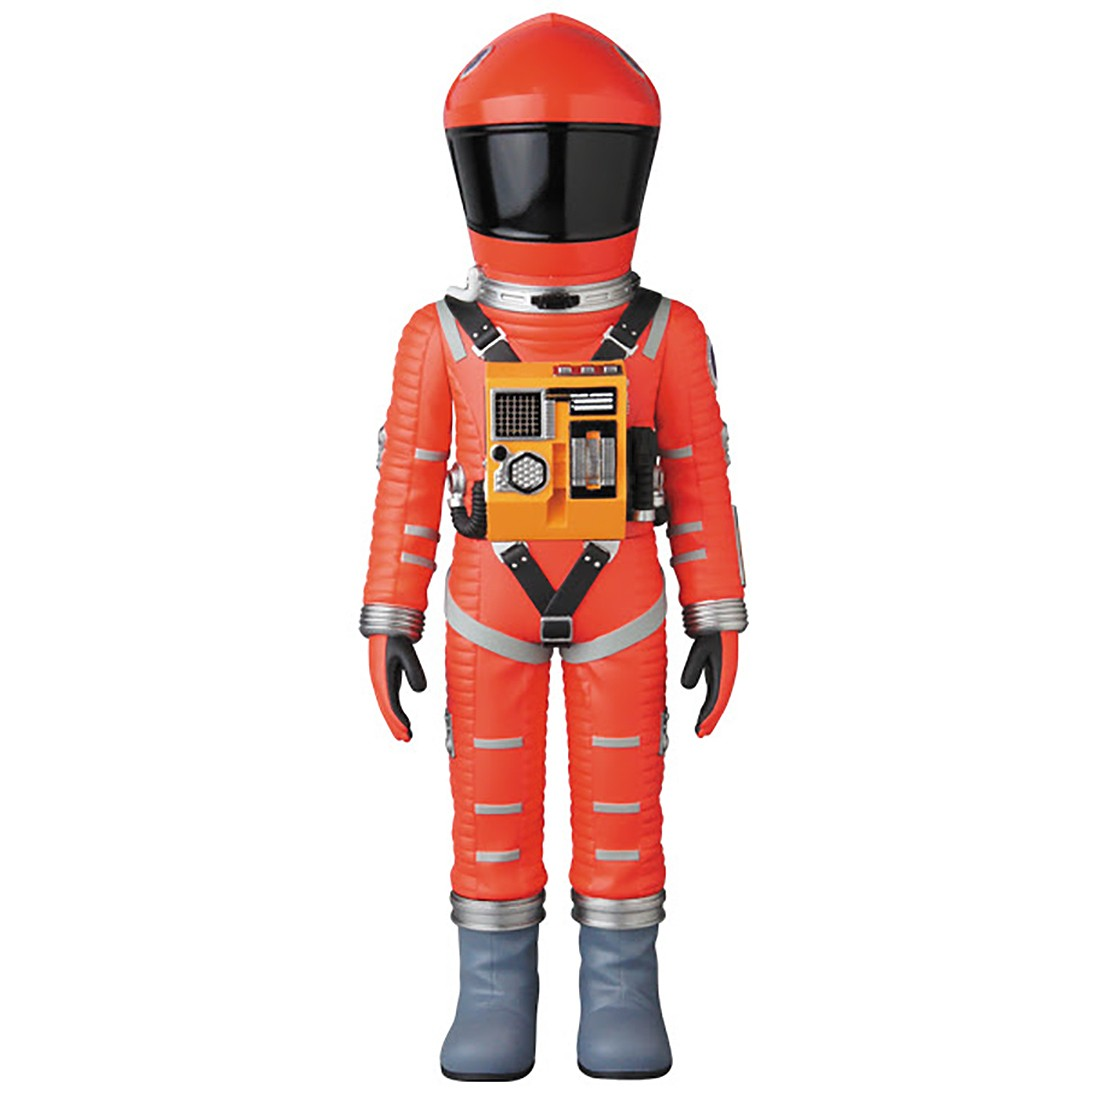 PREORDER - Medicom VCD 2001 A Space Odyssey Space Suit Figure (orange)